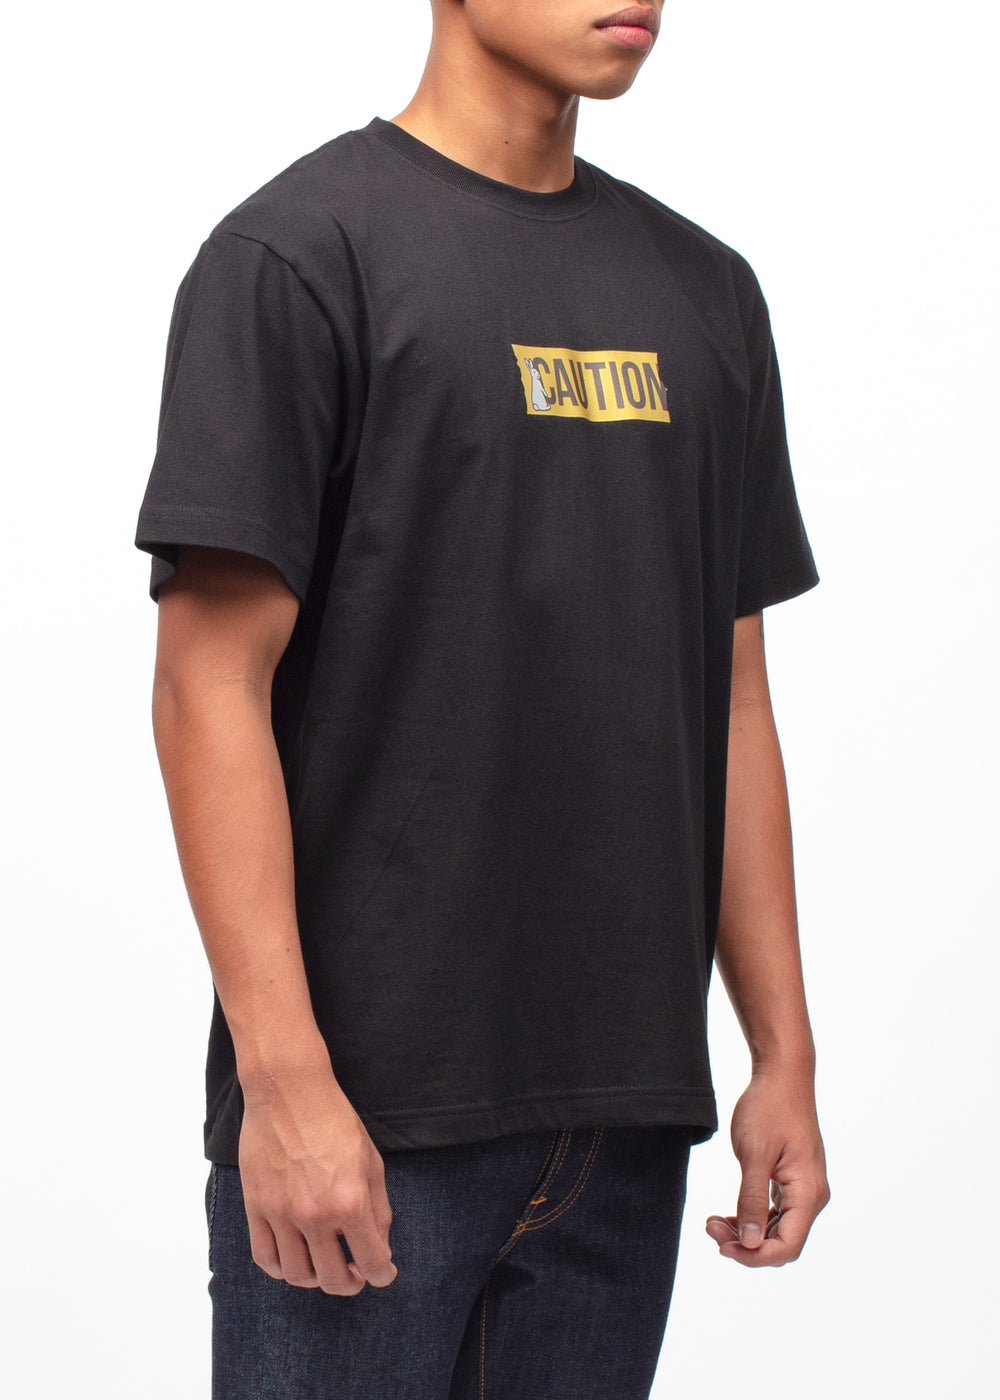 caution-refl-tee-frc540-blk-blk-2